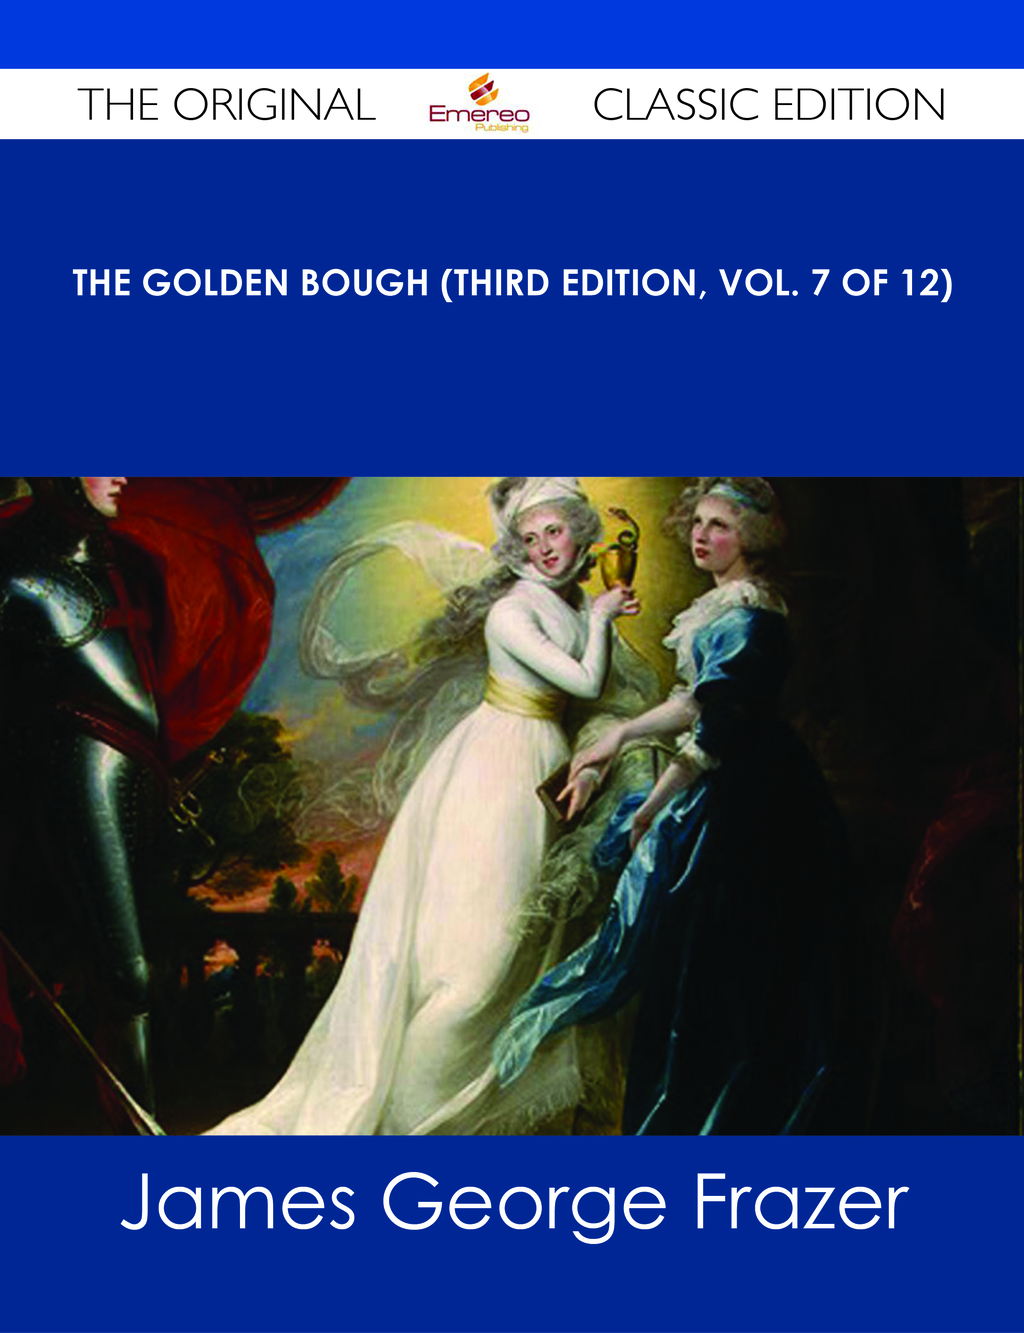 The Golden Bough (Third Edition, Vol. 7 of 12) - The Original Classic Edition